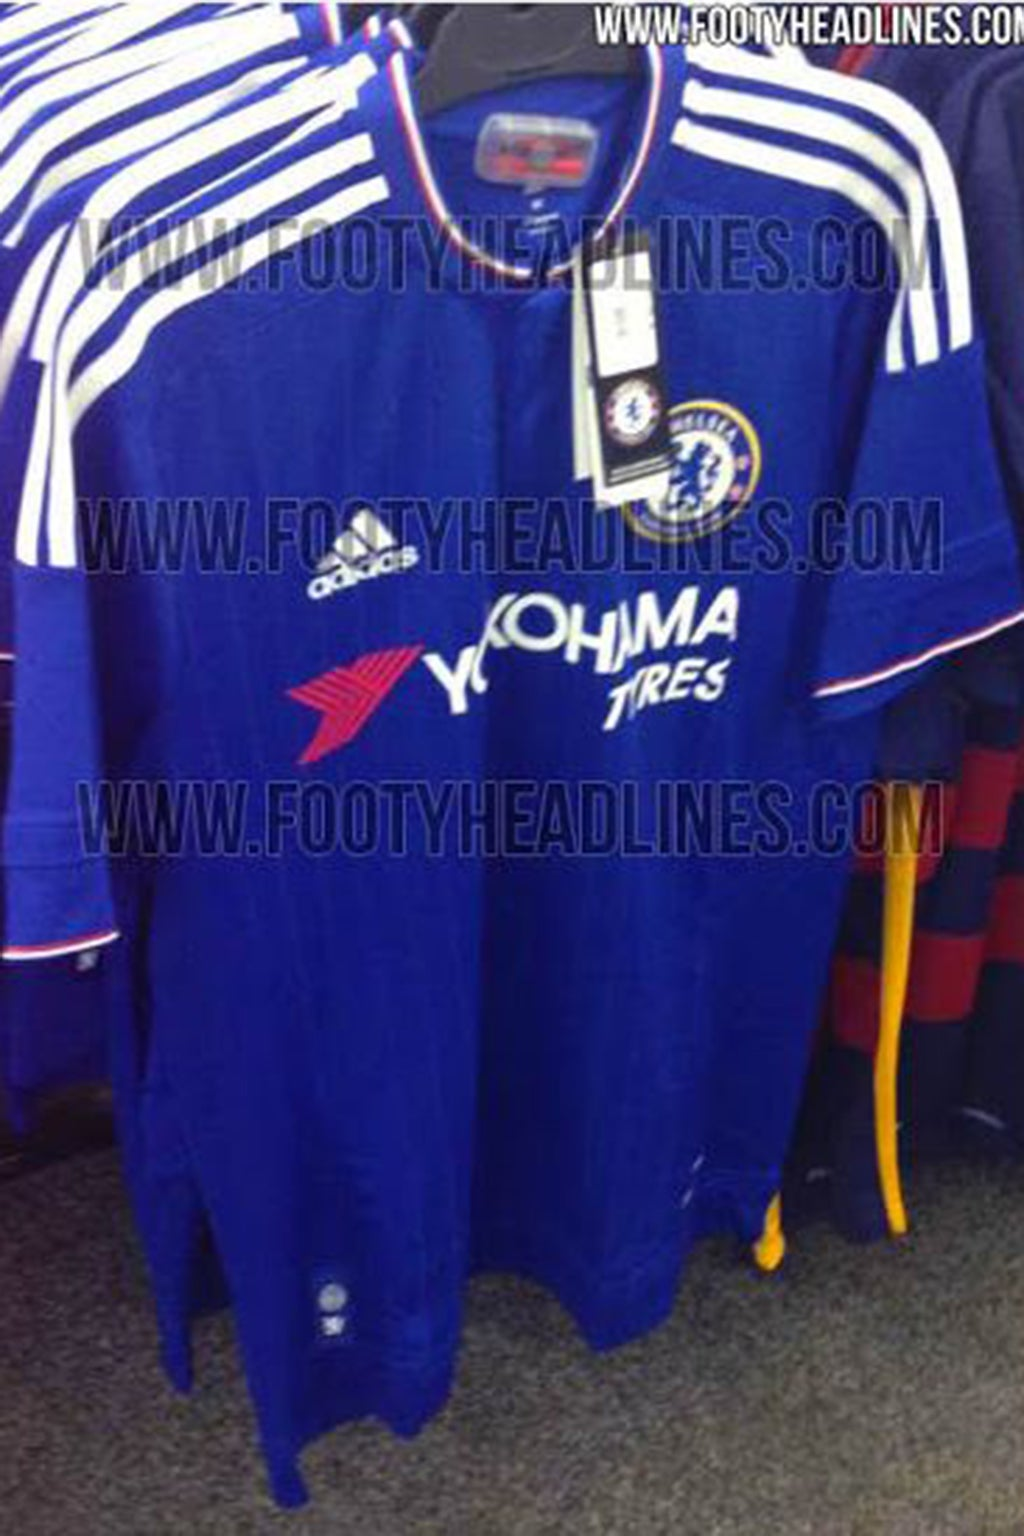 a81b0de756c Chelsea 2015 16 home shirt leaked again as new picture appears ...